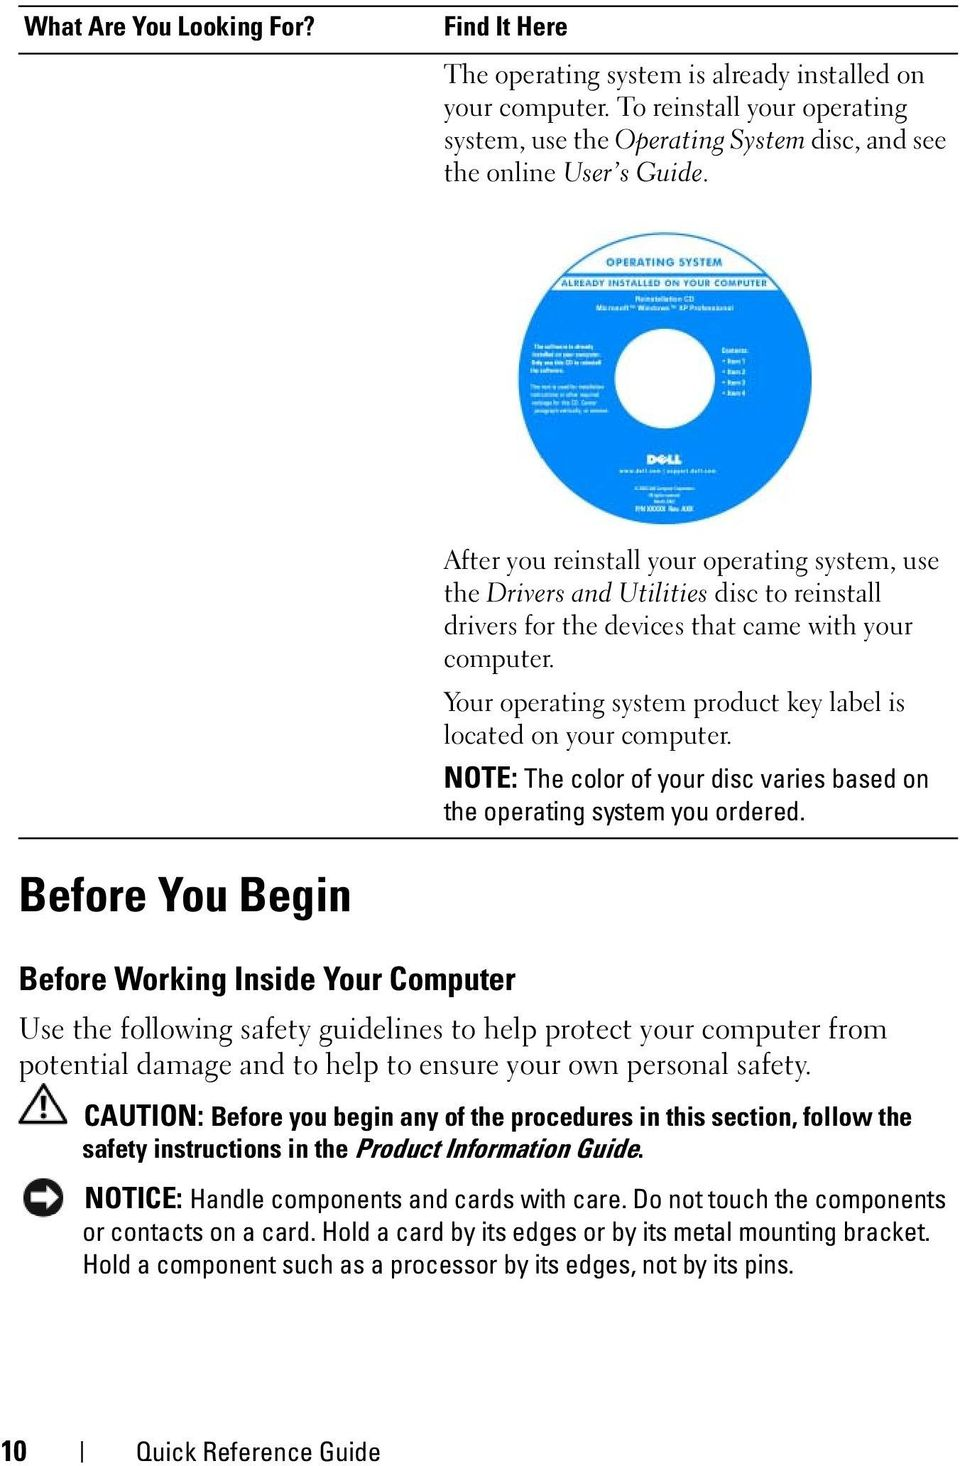 Your operating system product key label is located on your computer. NOTE: The color of your disc varies based on the operating system you ordered.